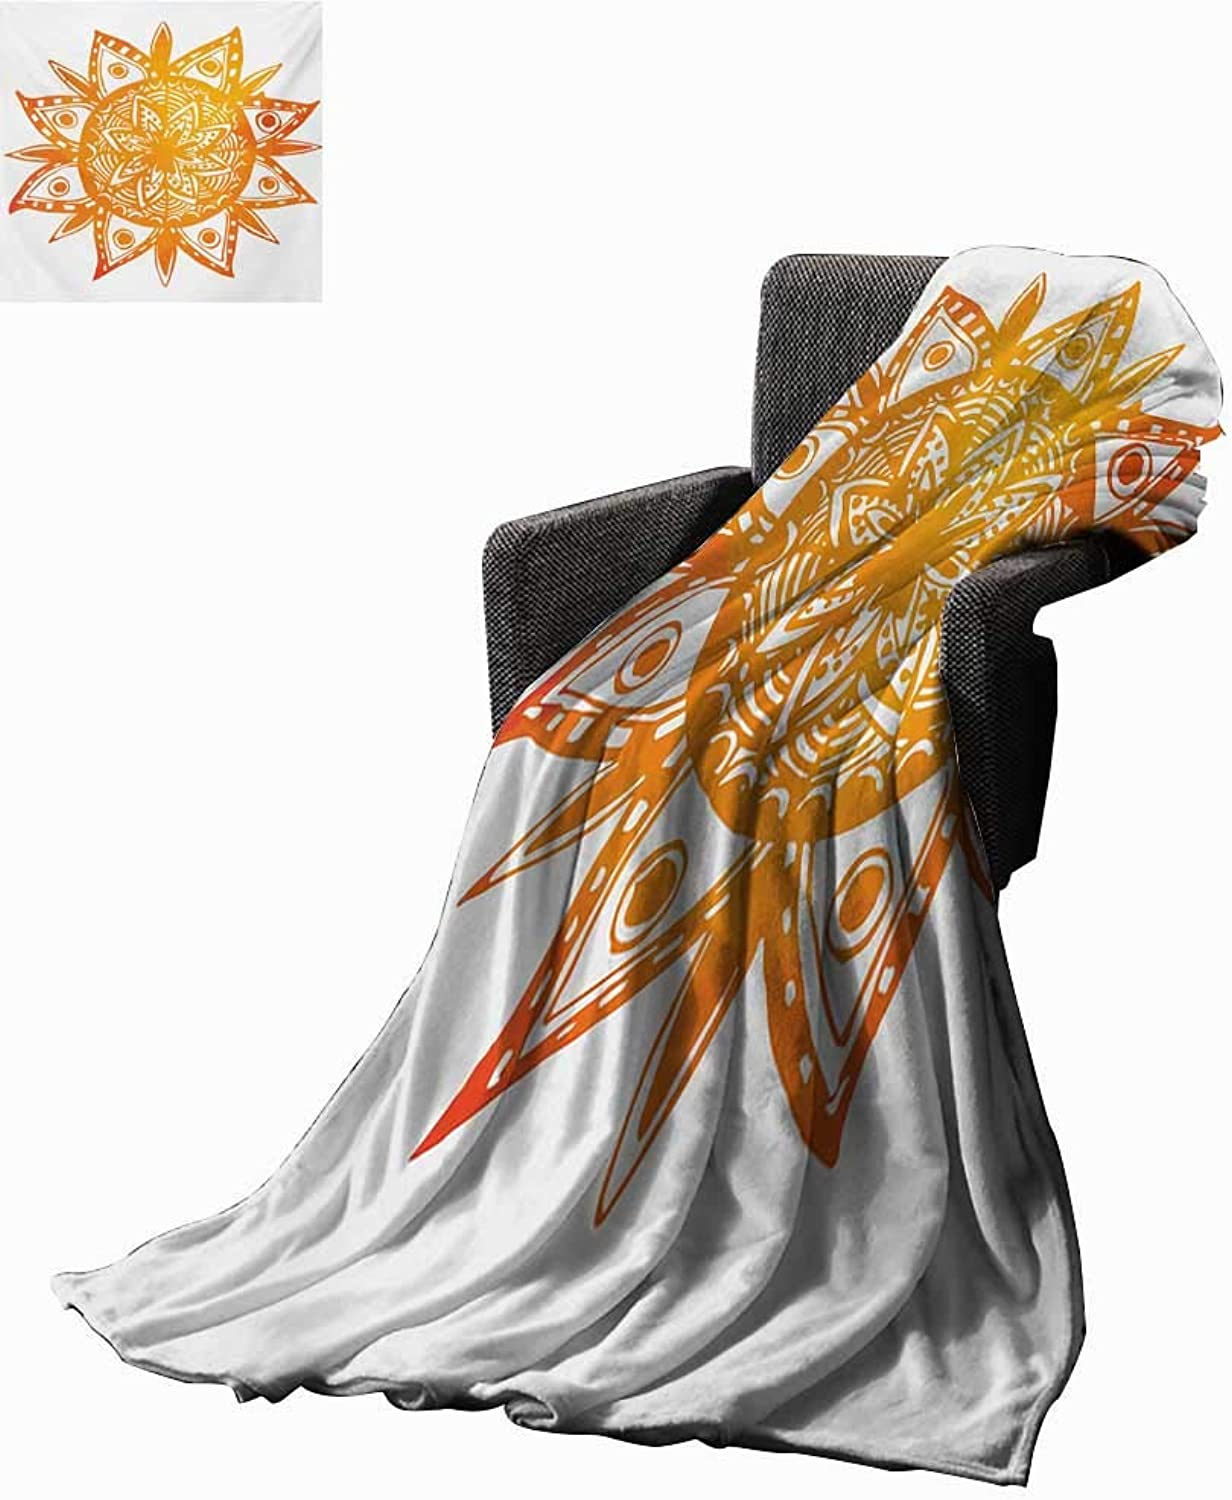 orange Weave Pattern Extra Long Blanket Watercolor Style Hand Drawn Sun Figure Tribal Ethnic Mandala Artistic Asian Print,Super Soft and Comfortable,Suitable for Sofas,Chairs,beds